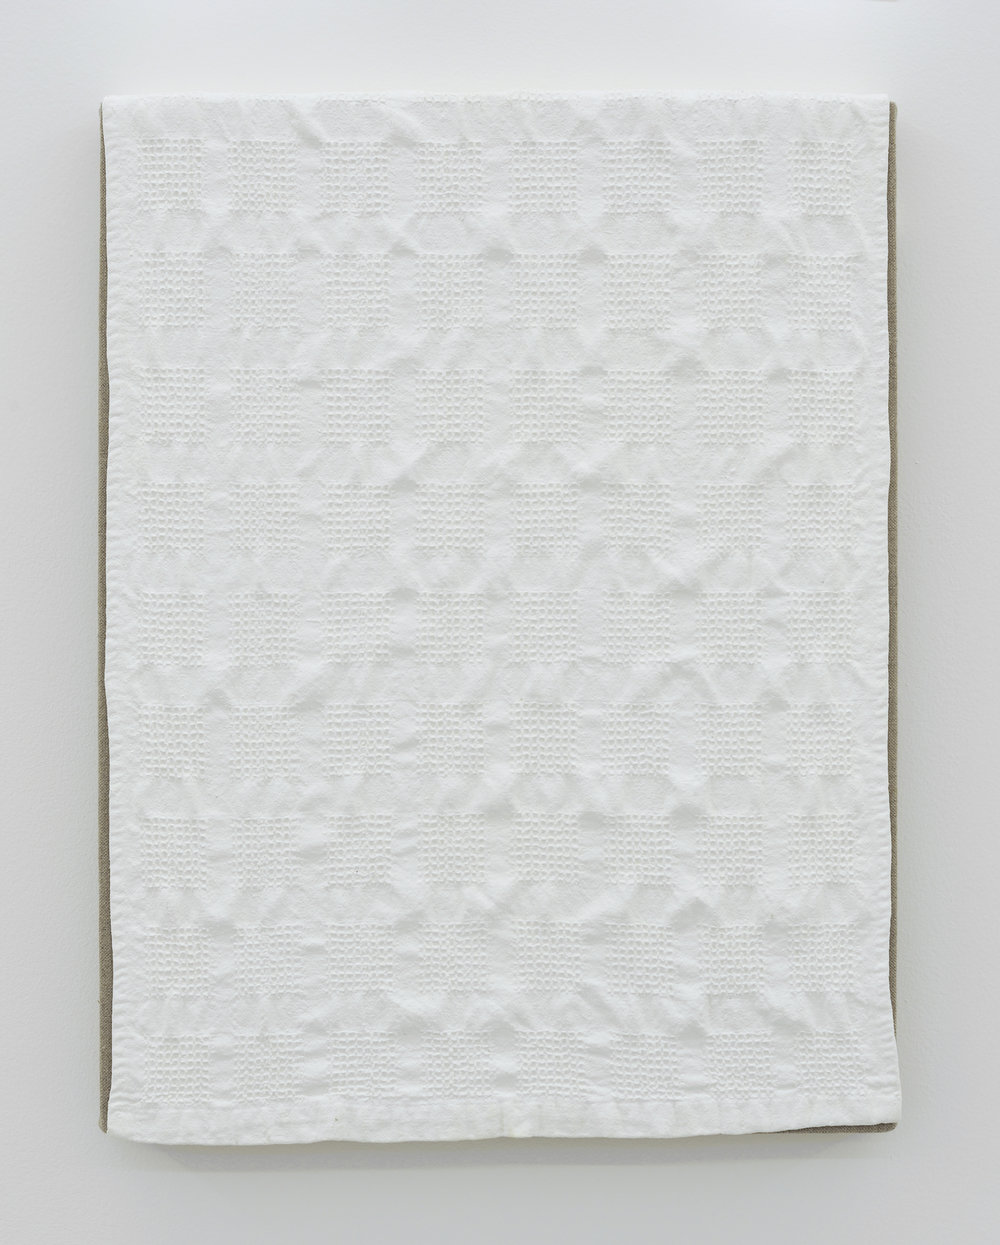 Dish Towel, 2011 acrylic on canvas 46 x 35,5 x 4 cm - 18 1/8 x 14 x 1 5/8 inches